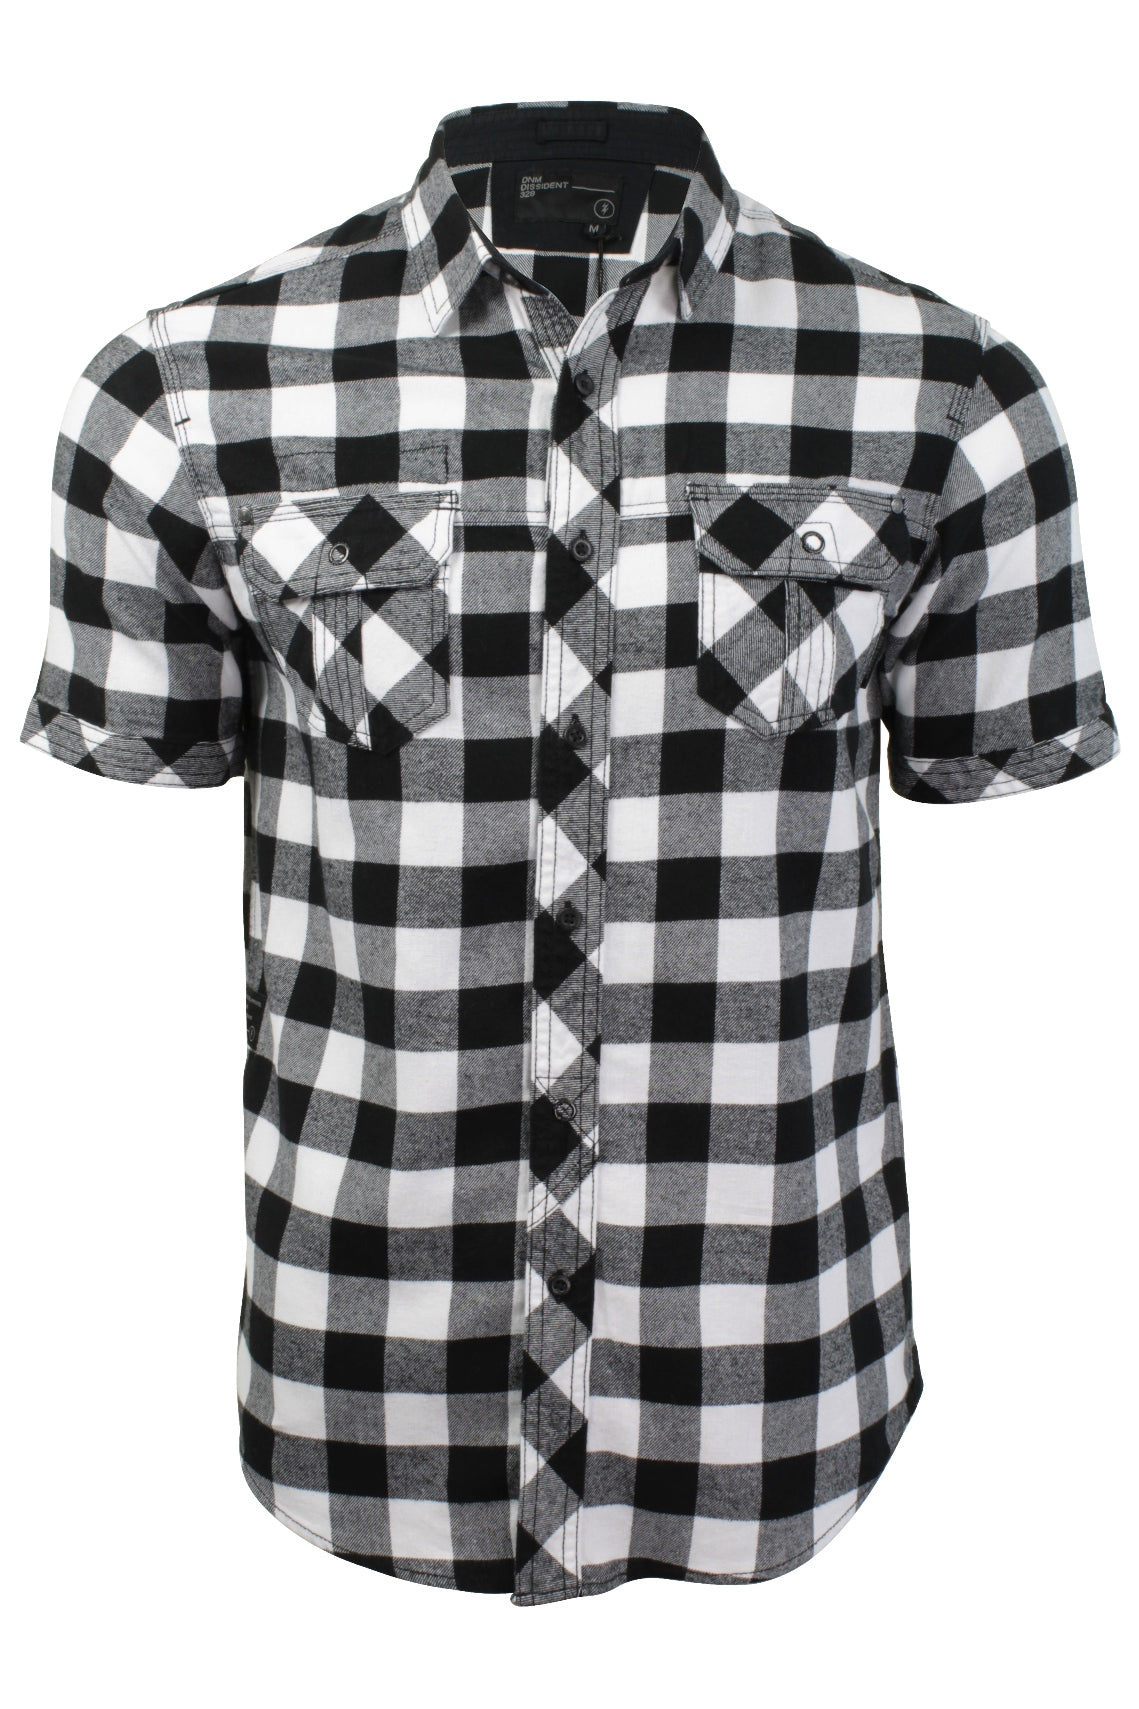 Mens Buffalo Check Shirt by Dissident 'Pedroza' Short Sleeved-Main Image